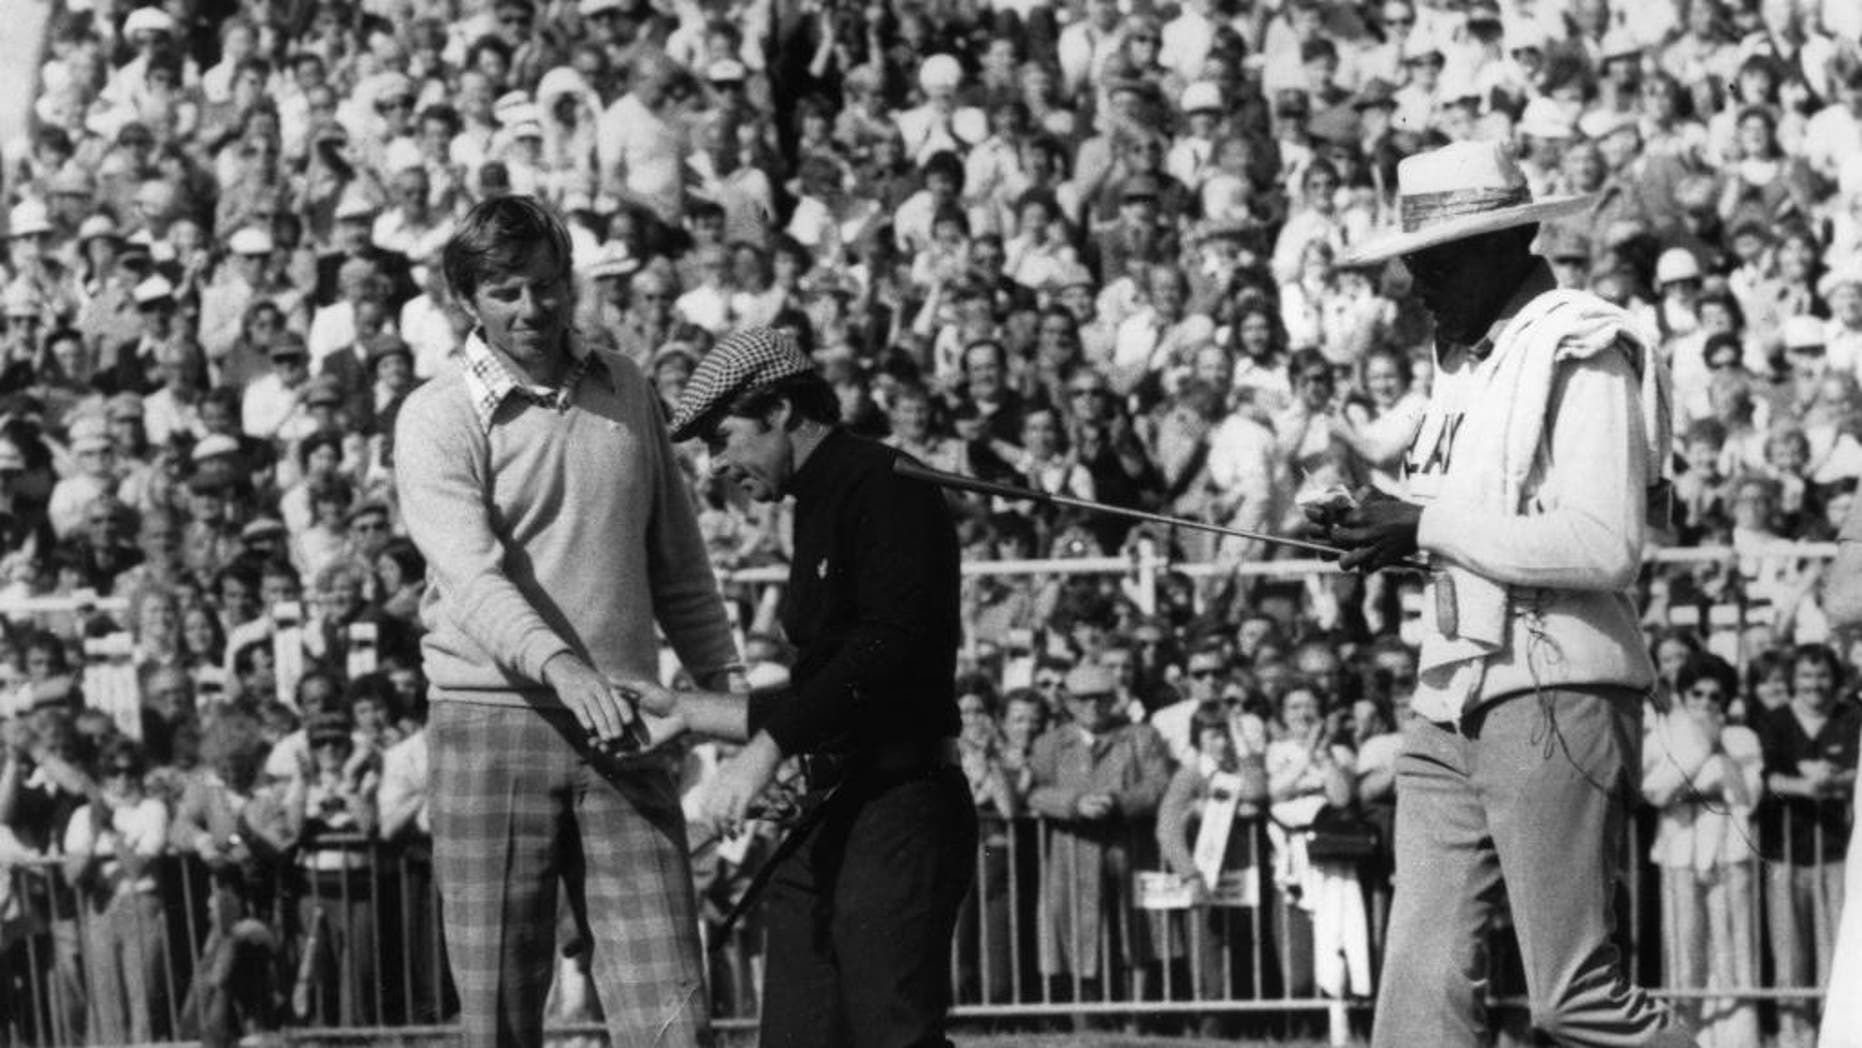 FILE - In this July 13, 1974, file photo, Gary Player, center, and Peter Oosterhuis shake hands after the final of the British Open Championship at Royal Lytham and St. Anne's in Lancashire, England. Oosterhuis, 67, said on Monday, June 29, 2015, that he has early onset Alzheimer's disease. (AP Photo, File)